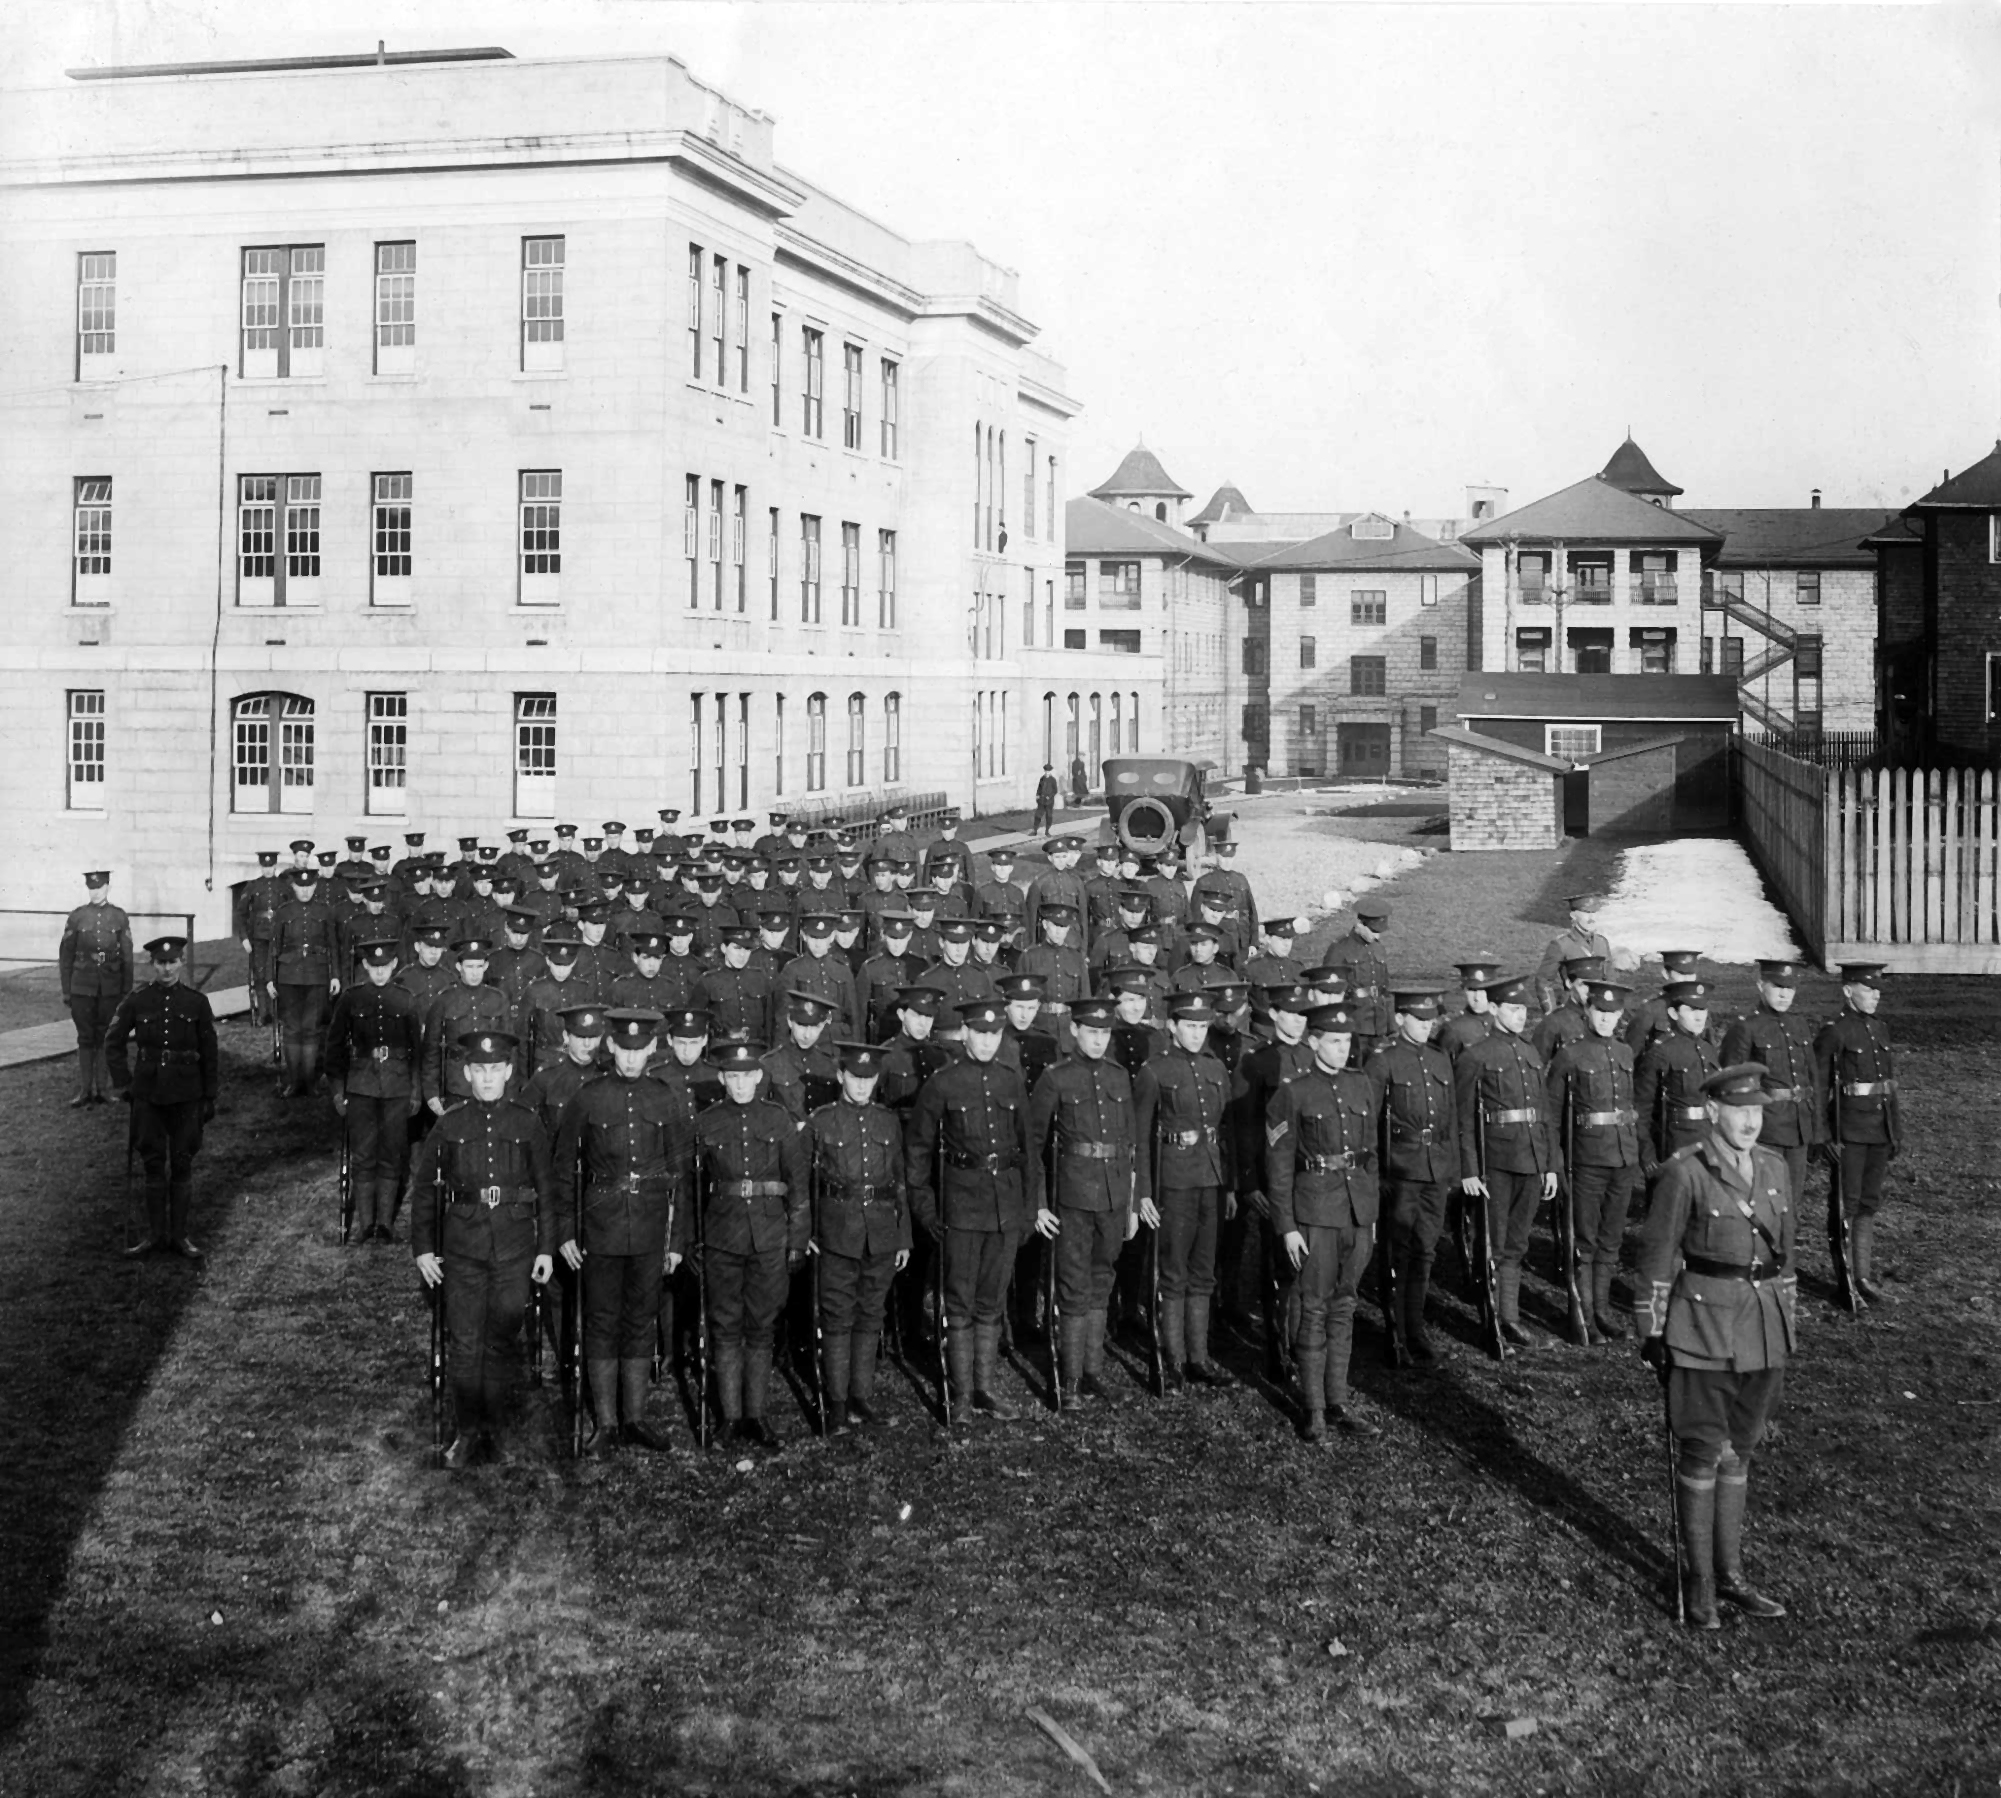 A class of the Canadian Officer Training Corps (COTC) at the University of British Columbia, circa 1915. By the end of the First World War, 697 COTC members would see active military service and 78 would be killed in action. In 1939, registration in the COTC doubled as the Second World War began. A total of 1,680 students enlisted in the armed services and 169 made the ultimate sacrifice.